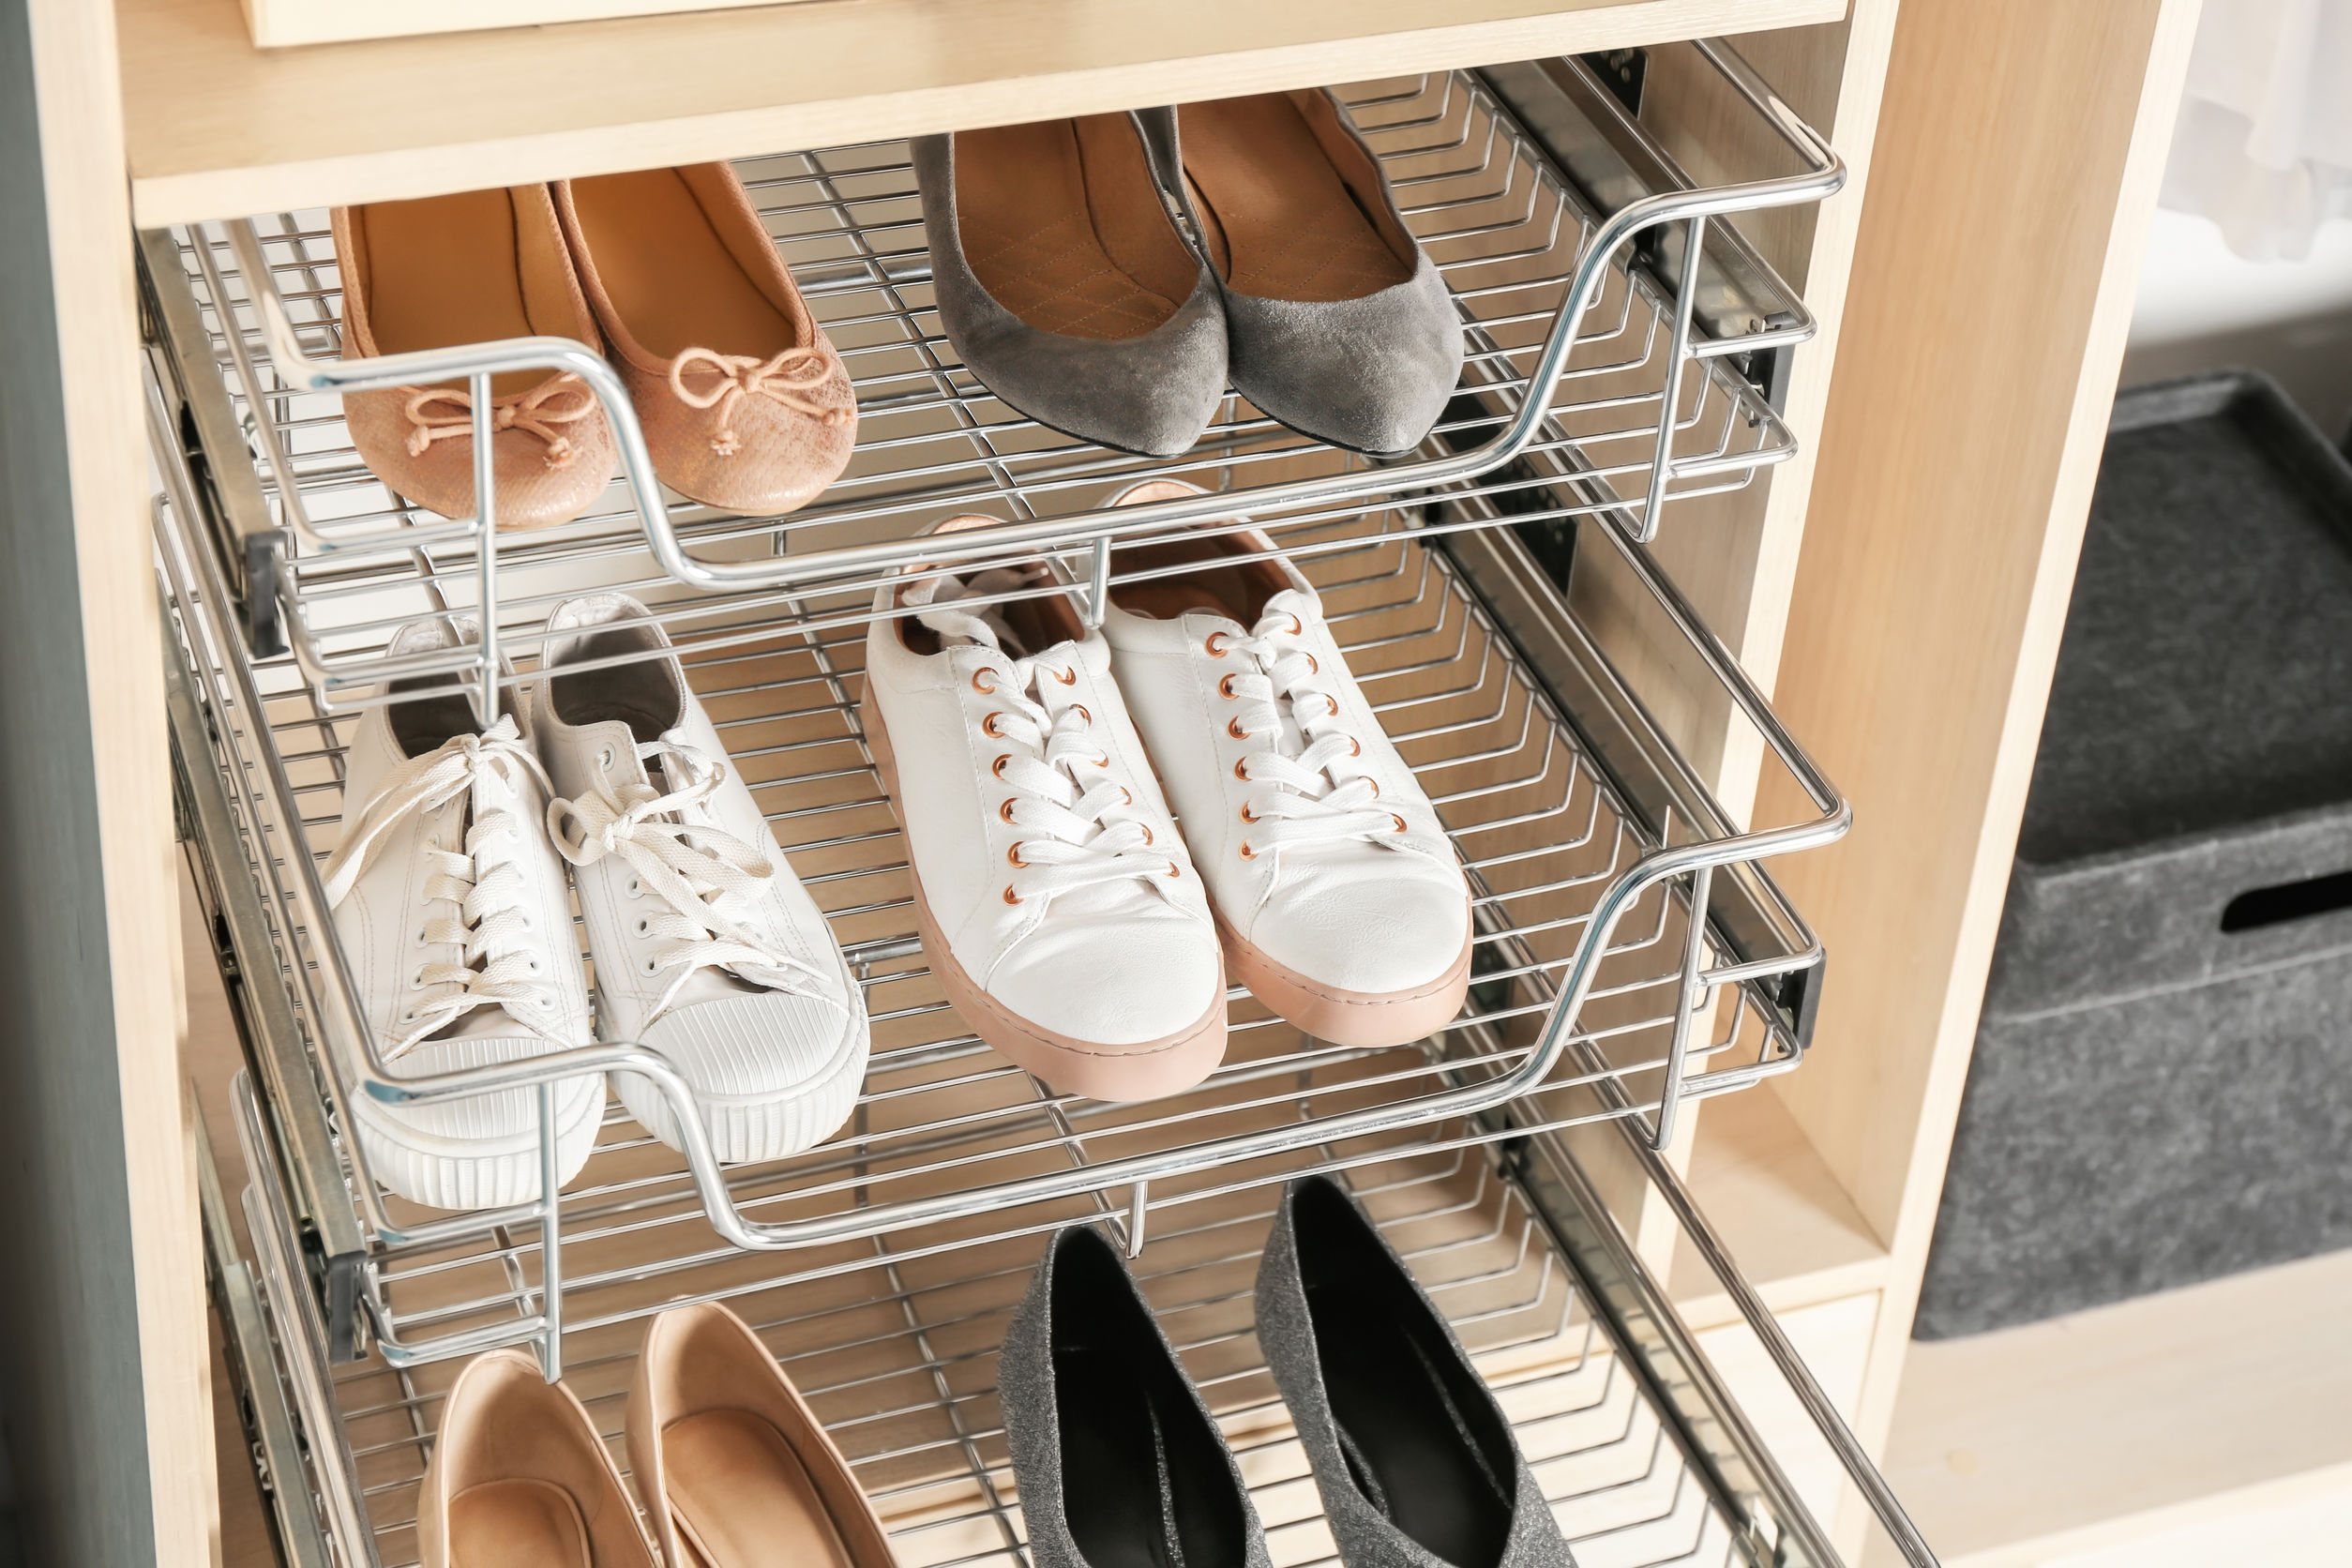 Best Shoe Racks of 2020: The ultimate guide